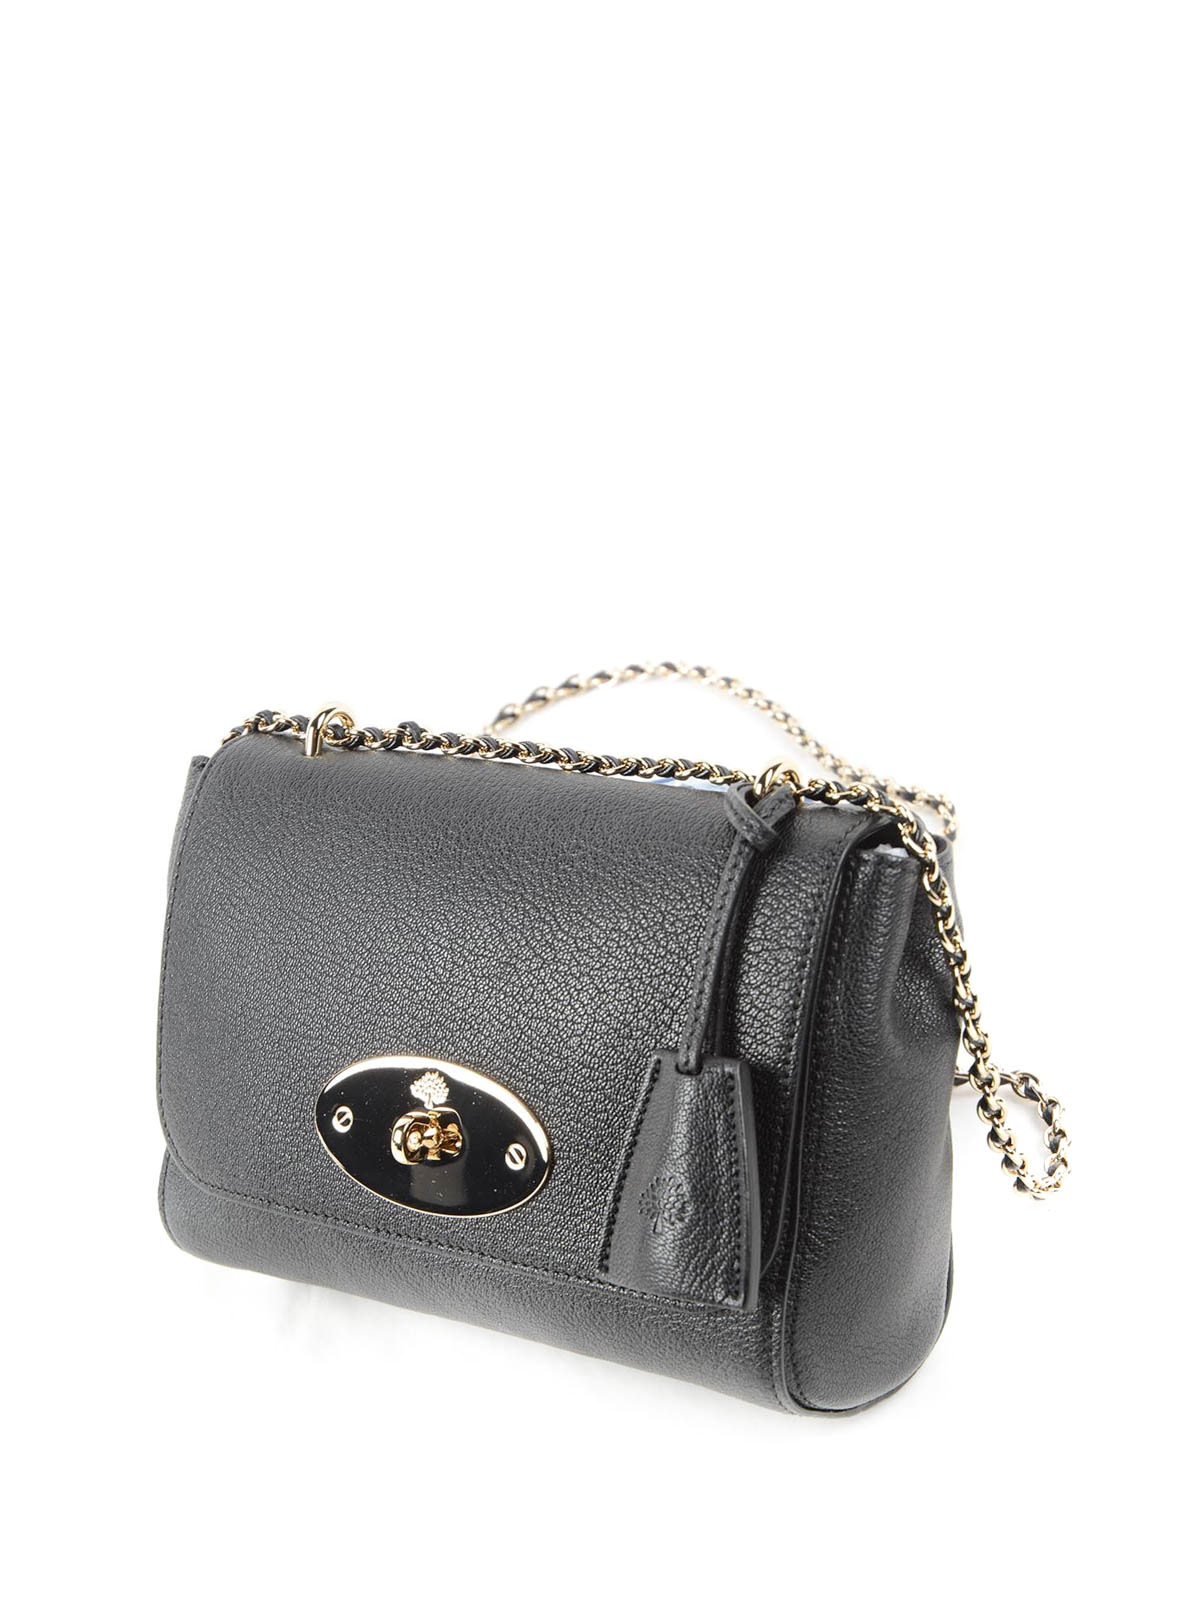 3195b69a186f Mulberry - Lily leather crossbody bag - cross body bags - HH3288 874A100